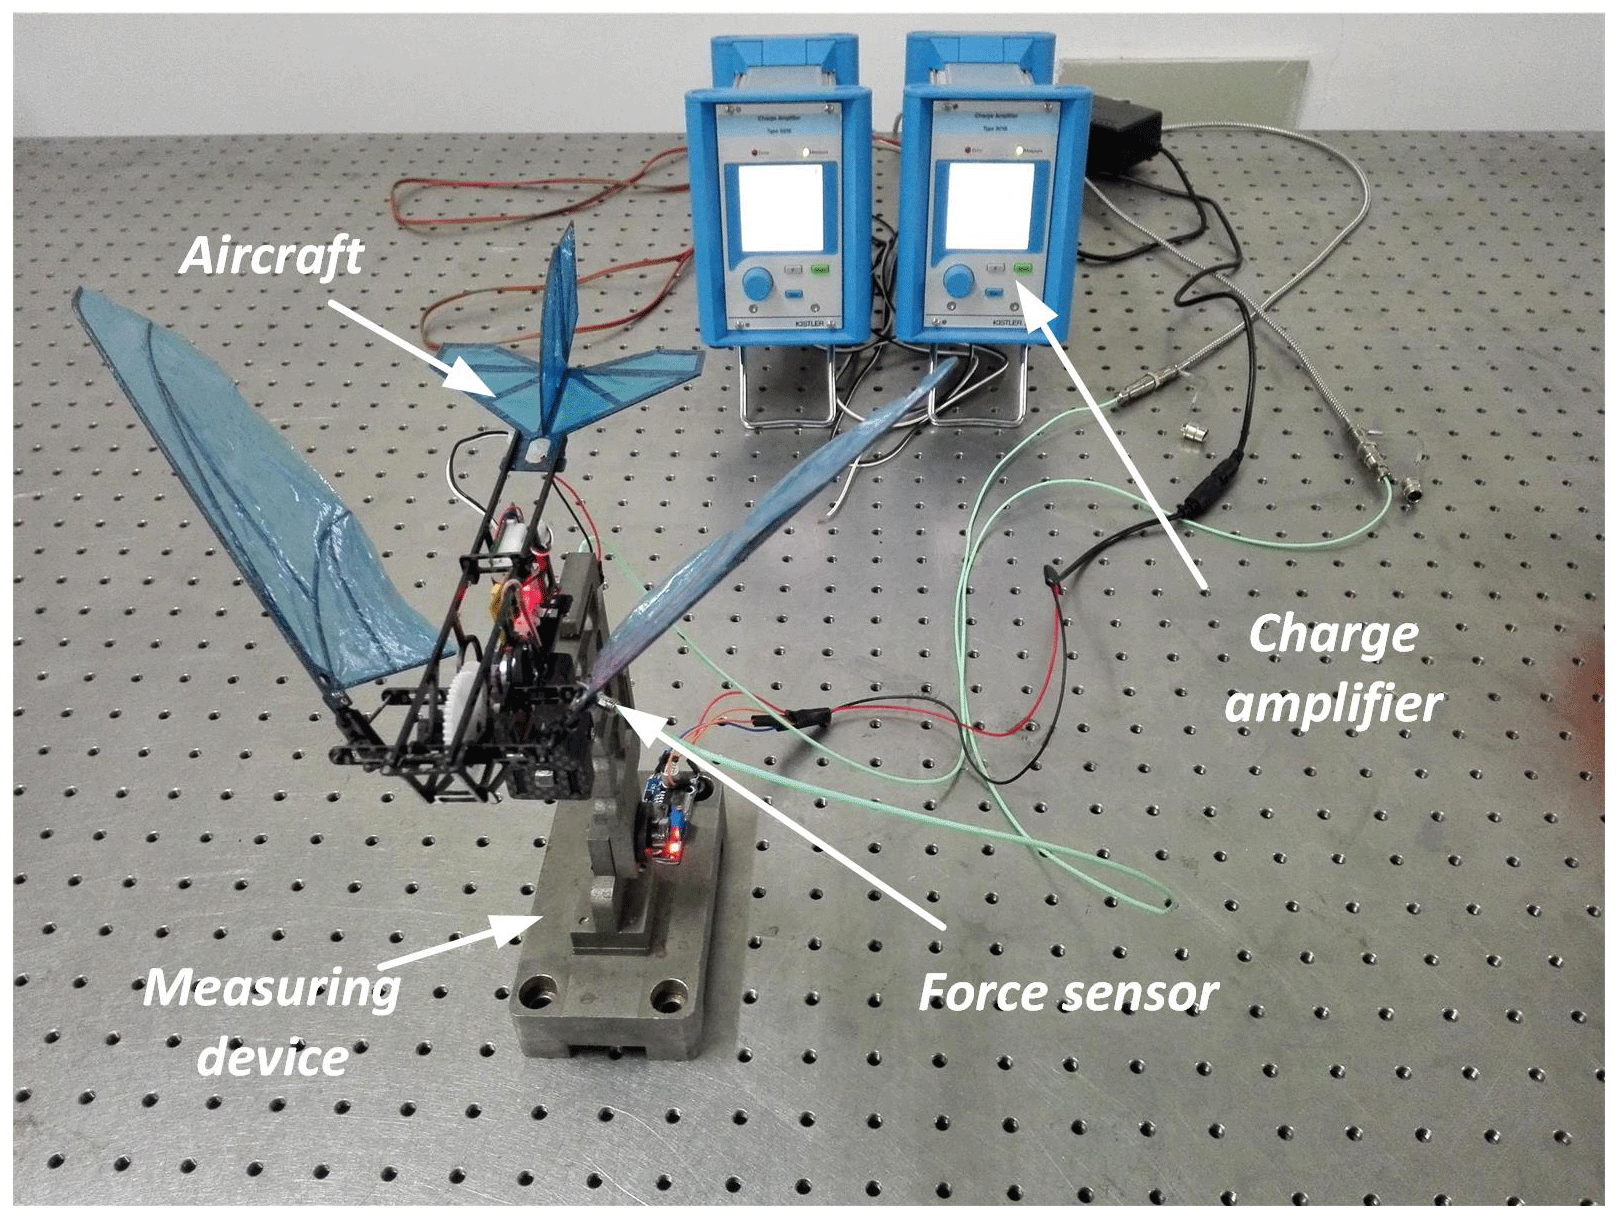 MS - Development of a novel flapping wing micro aerial